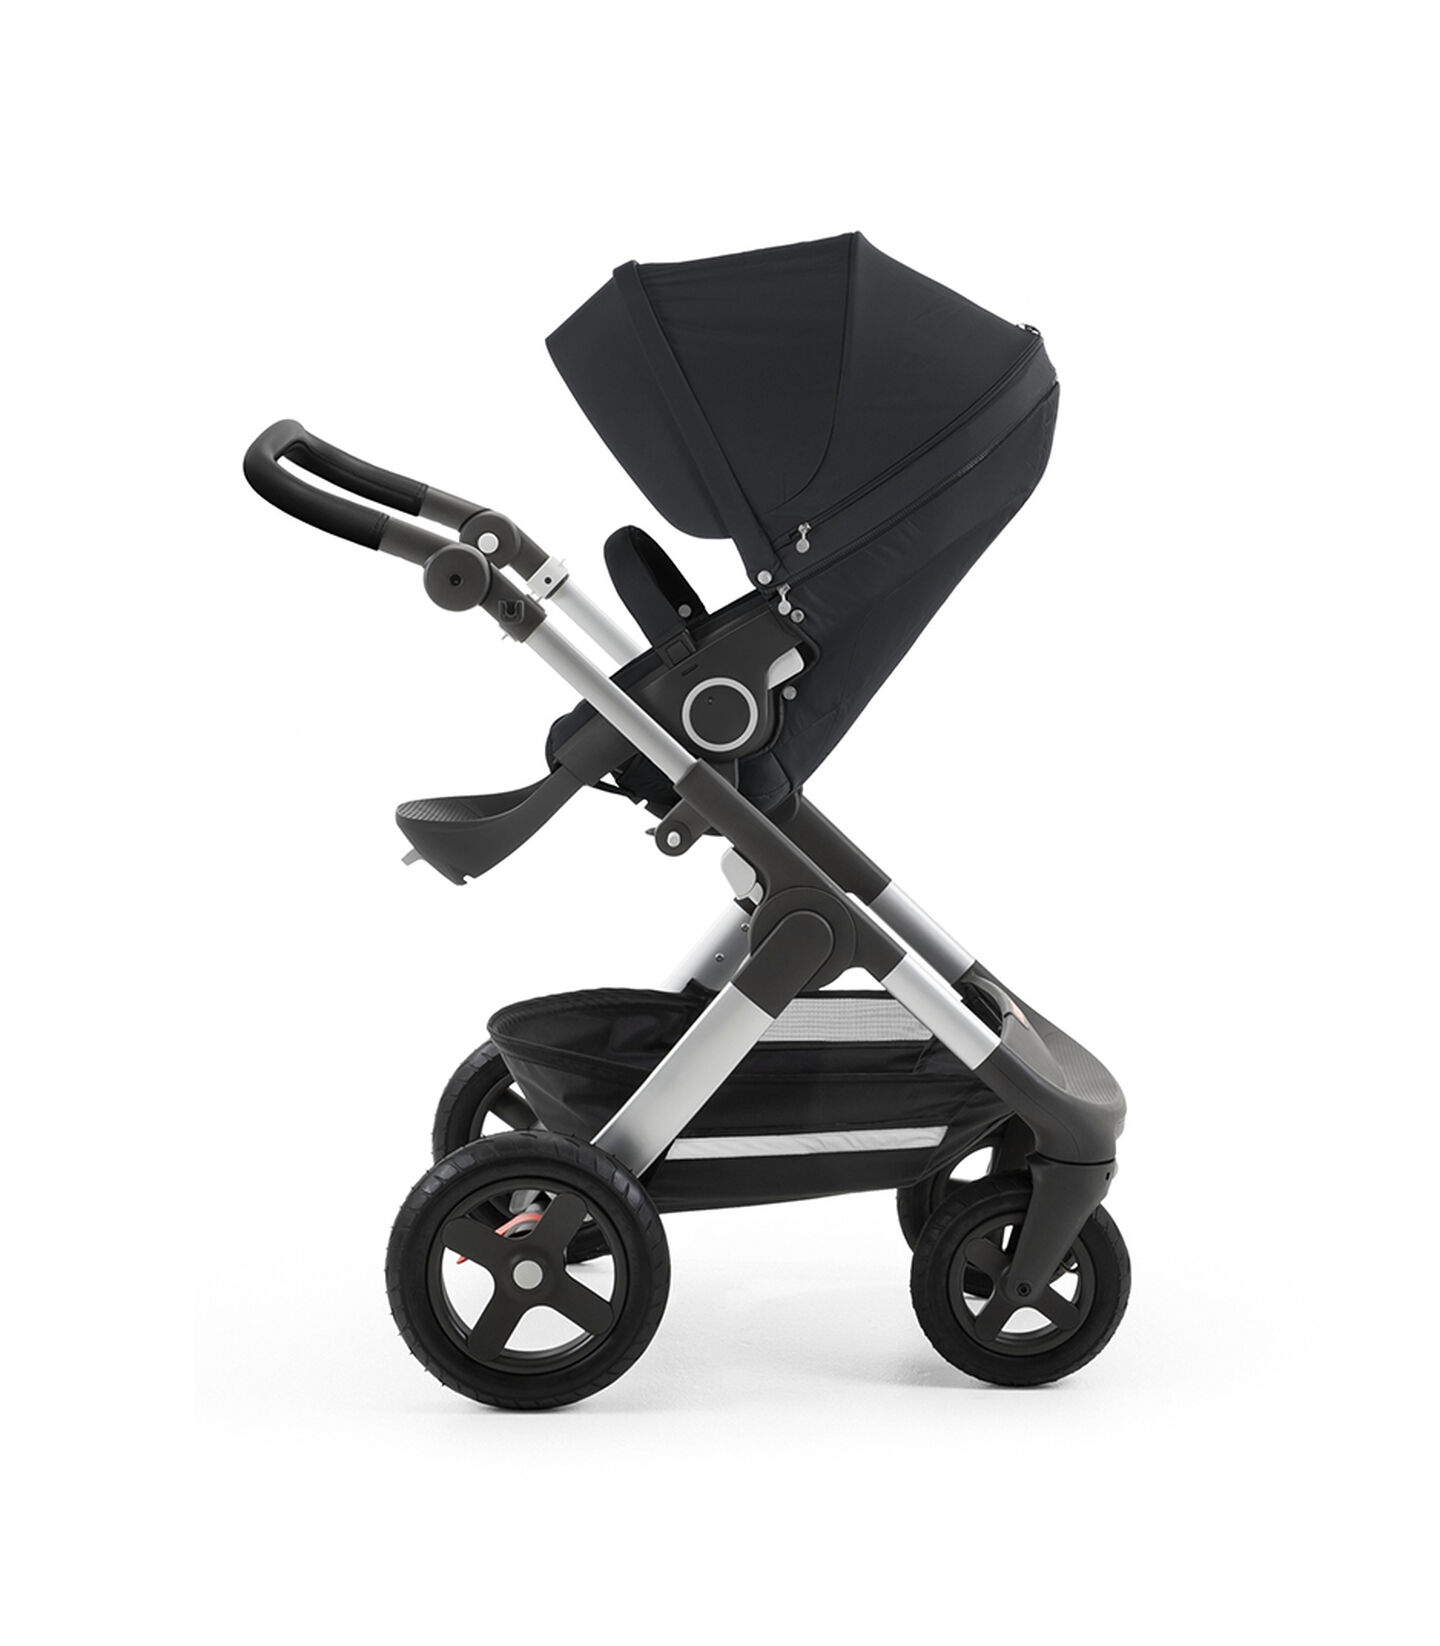 Stokke® Trailz™ with silver chassis and Stokke® Stroller Seat, Black. Leatherette Handle. Terrain Wheels. view 2